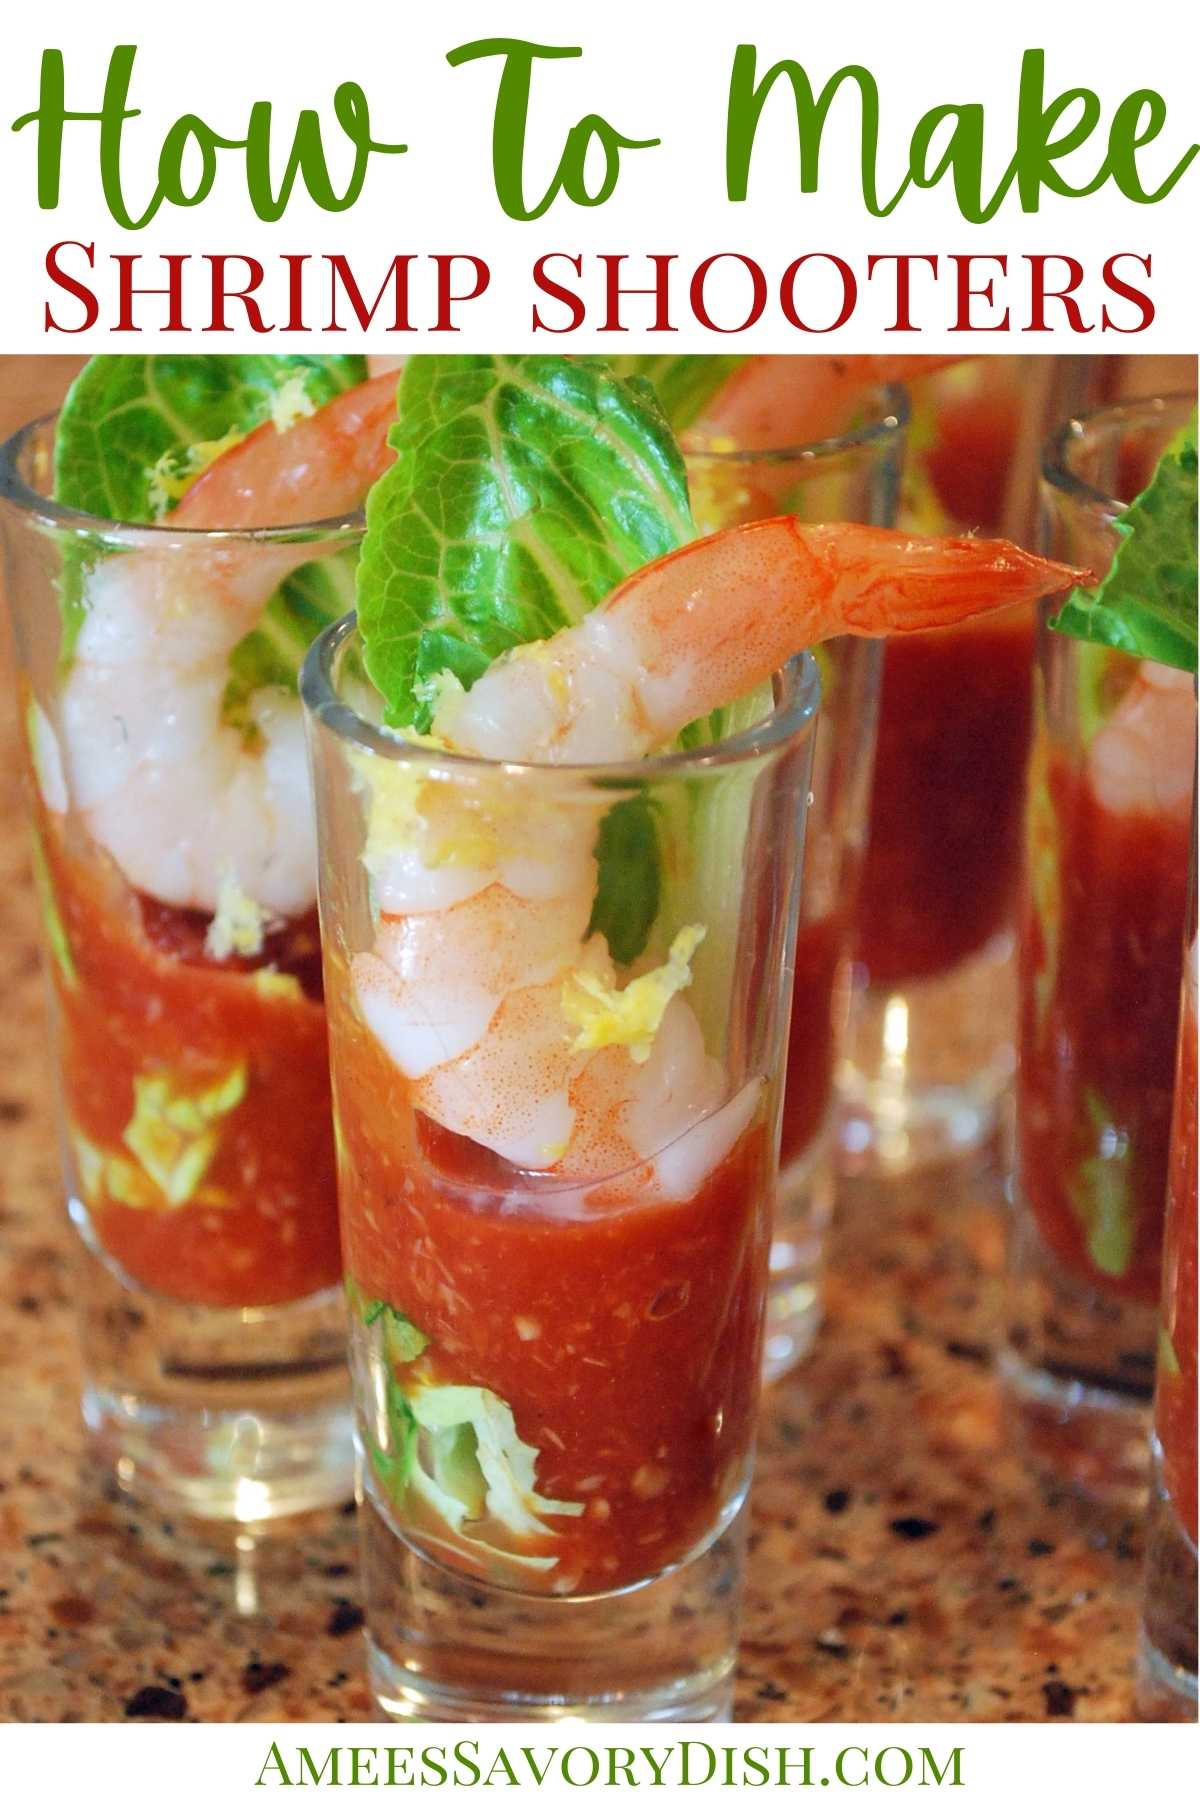 A simple, yet elegant recipe for shrimp shooters with a homemade cocktail sauce that are perfect for your next party or holiday gathering. via @Ameessavorydish